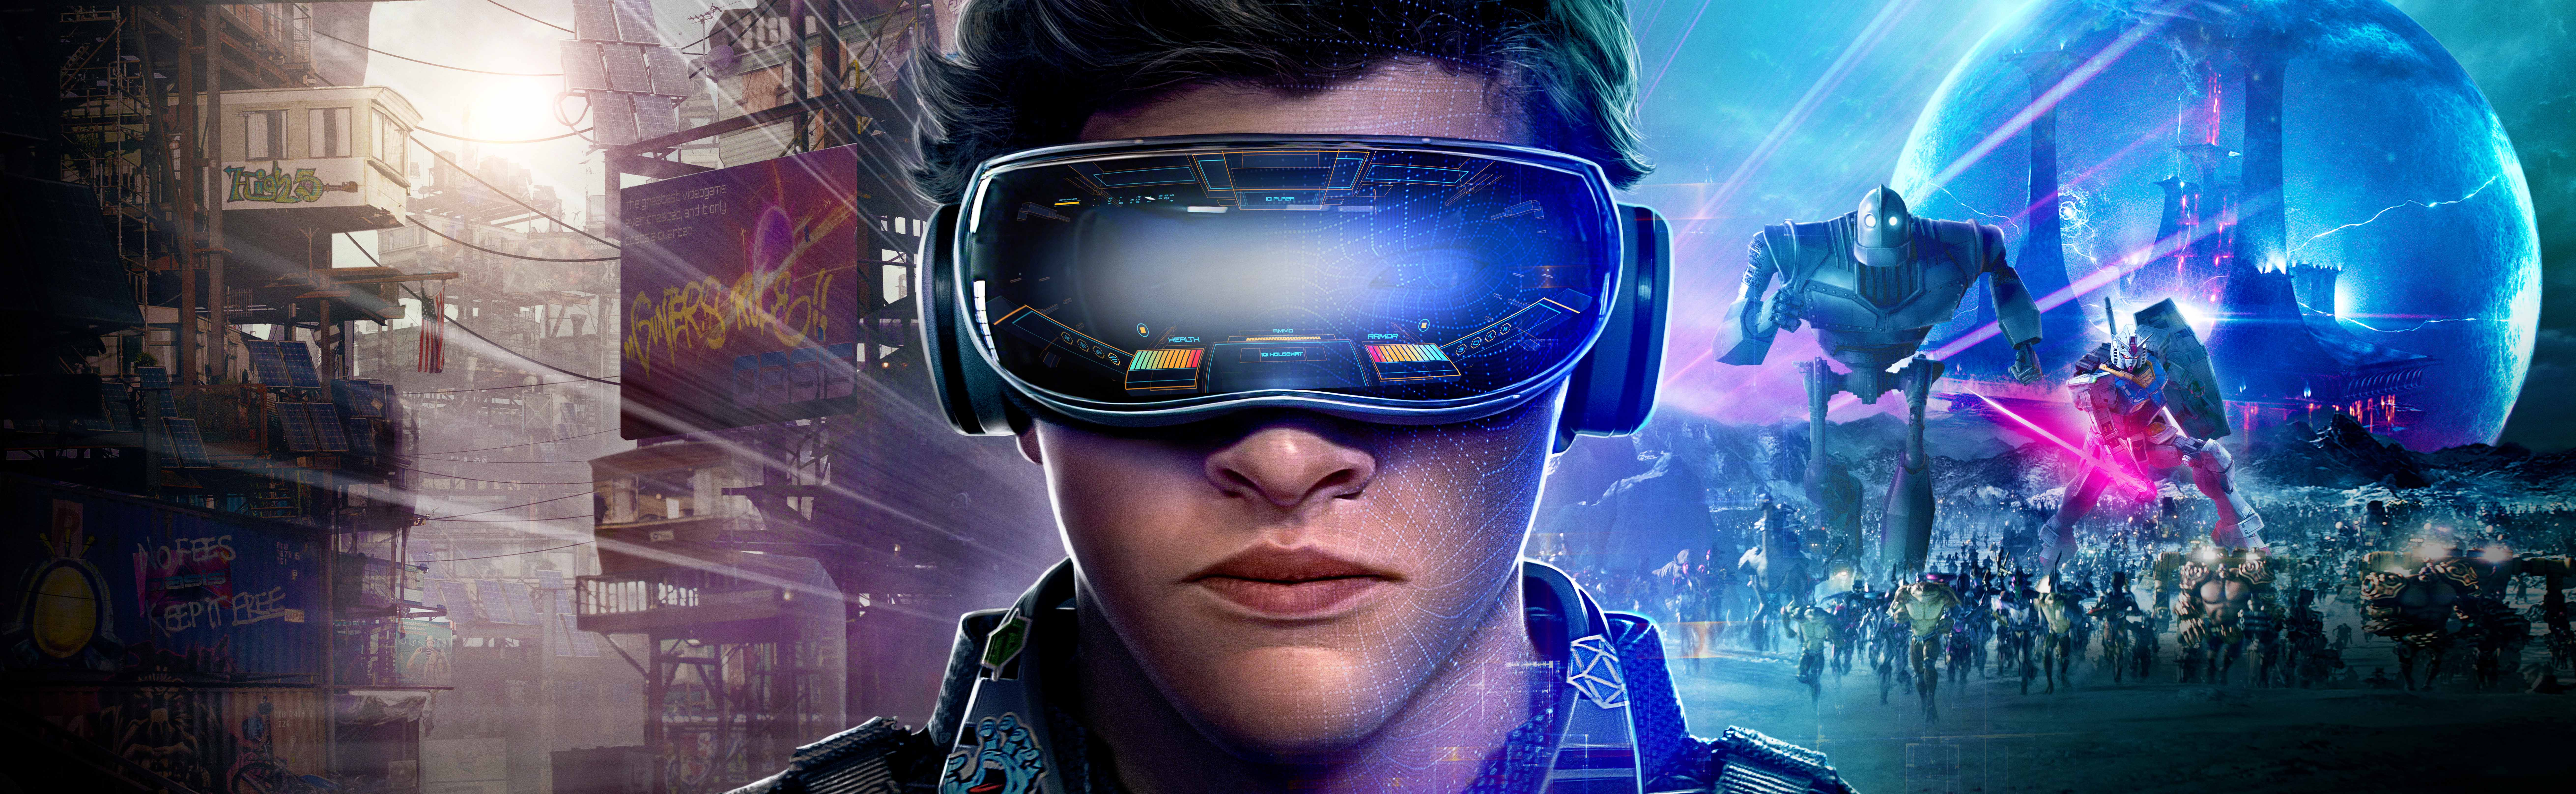 Ready Player One 10k Poster Hd Movies 4k Wallpapers Images